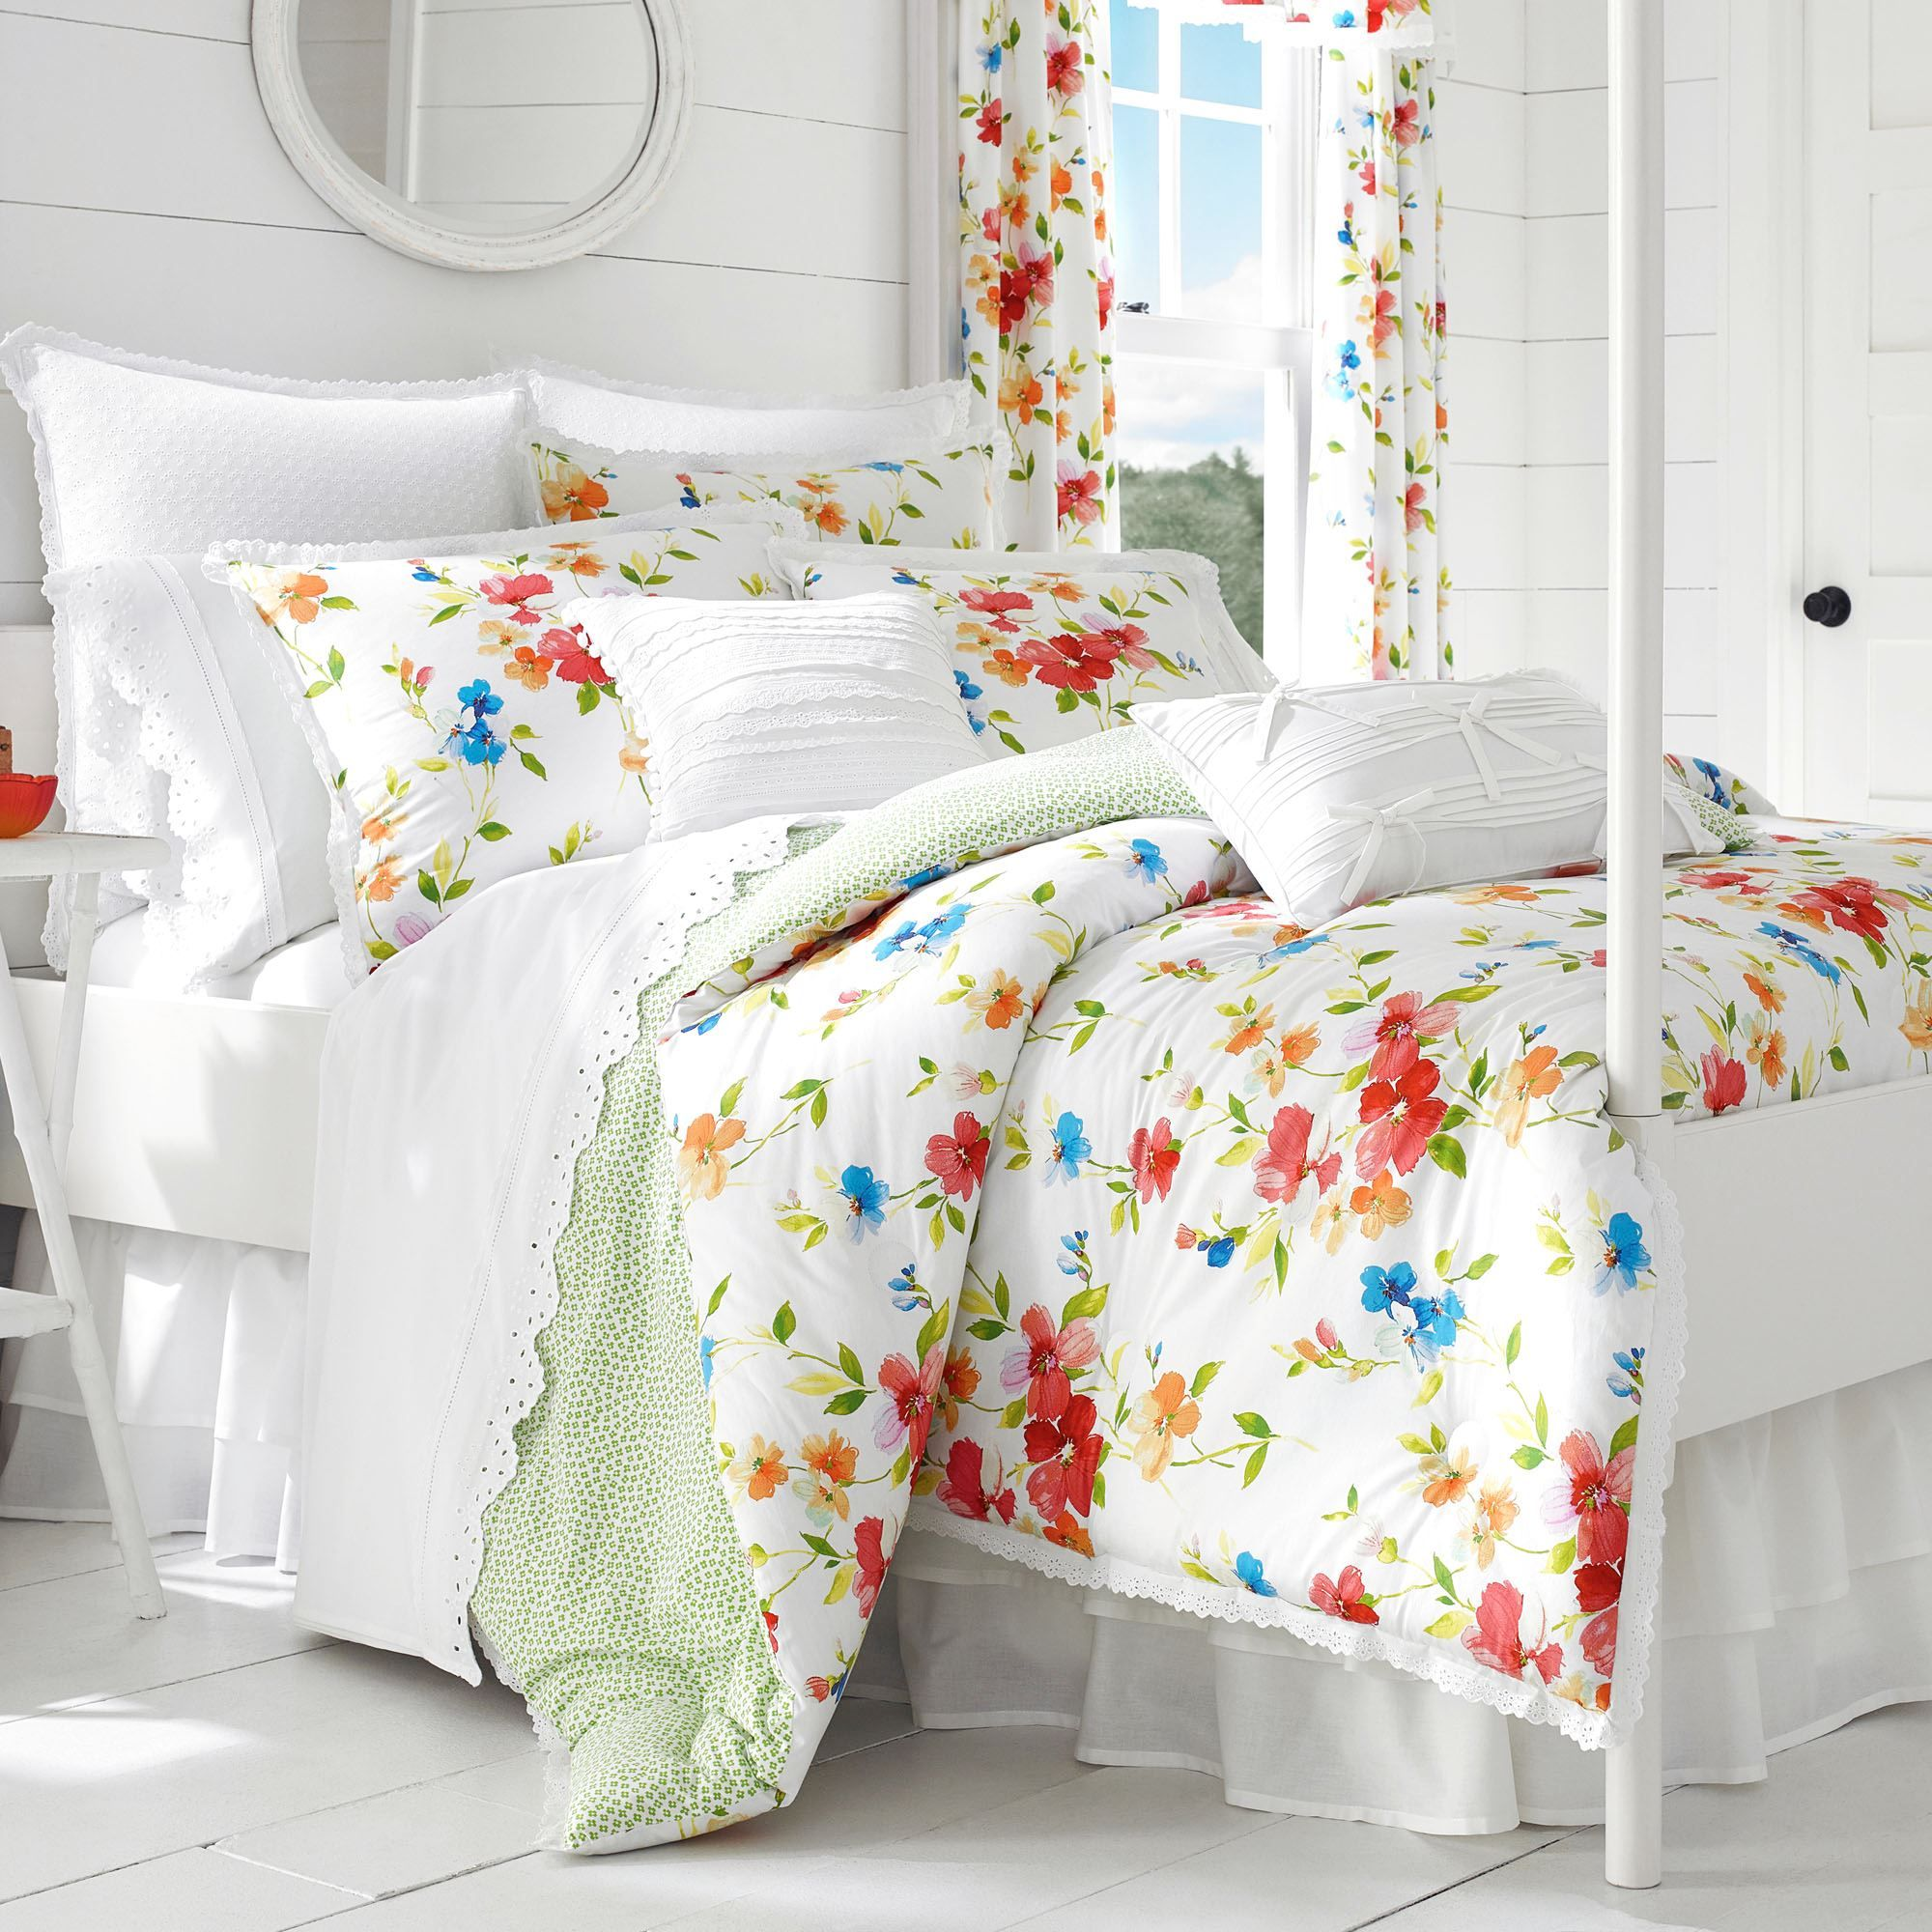 Summerfield Floral Bedding Accessories By Piper Wright Bedding